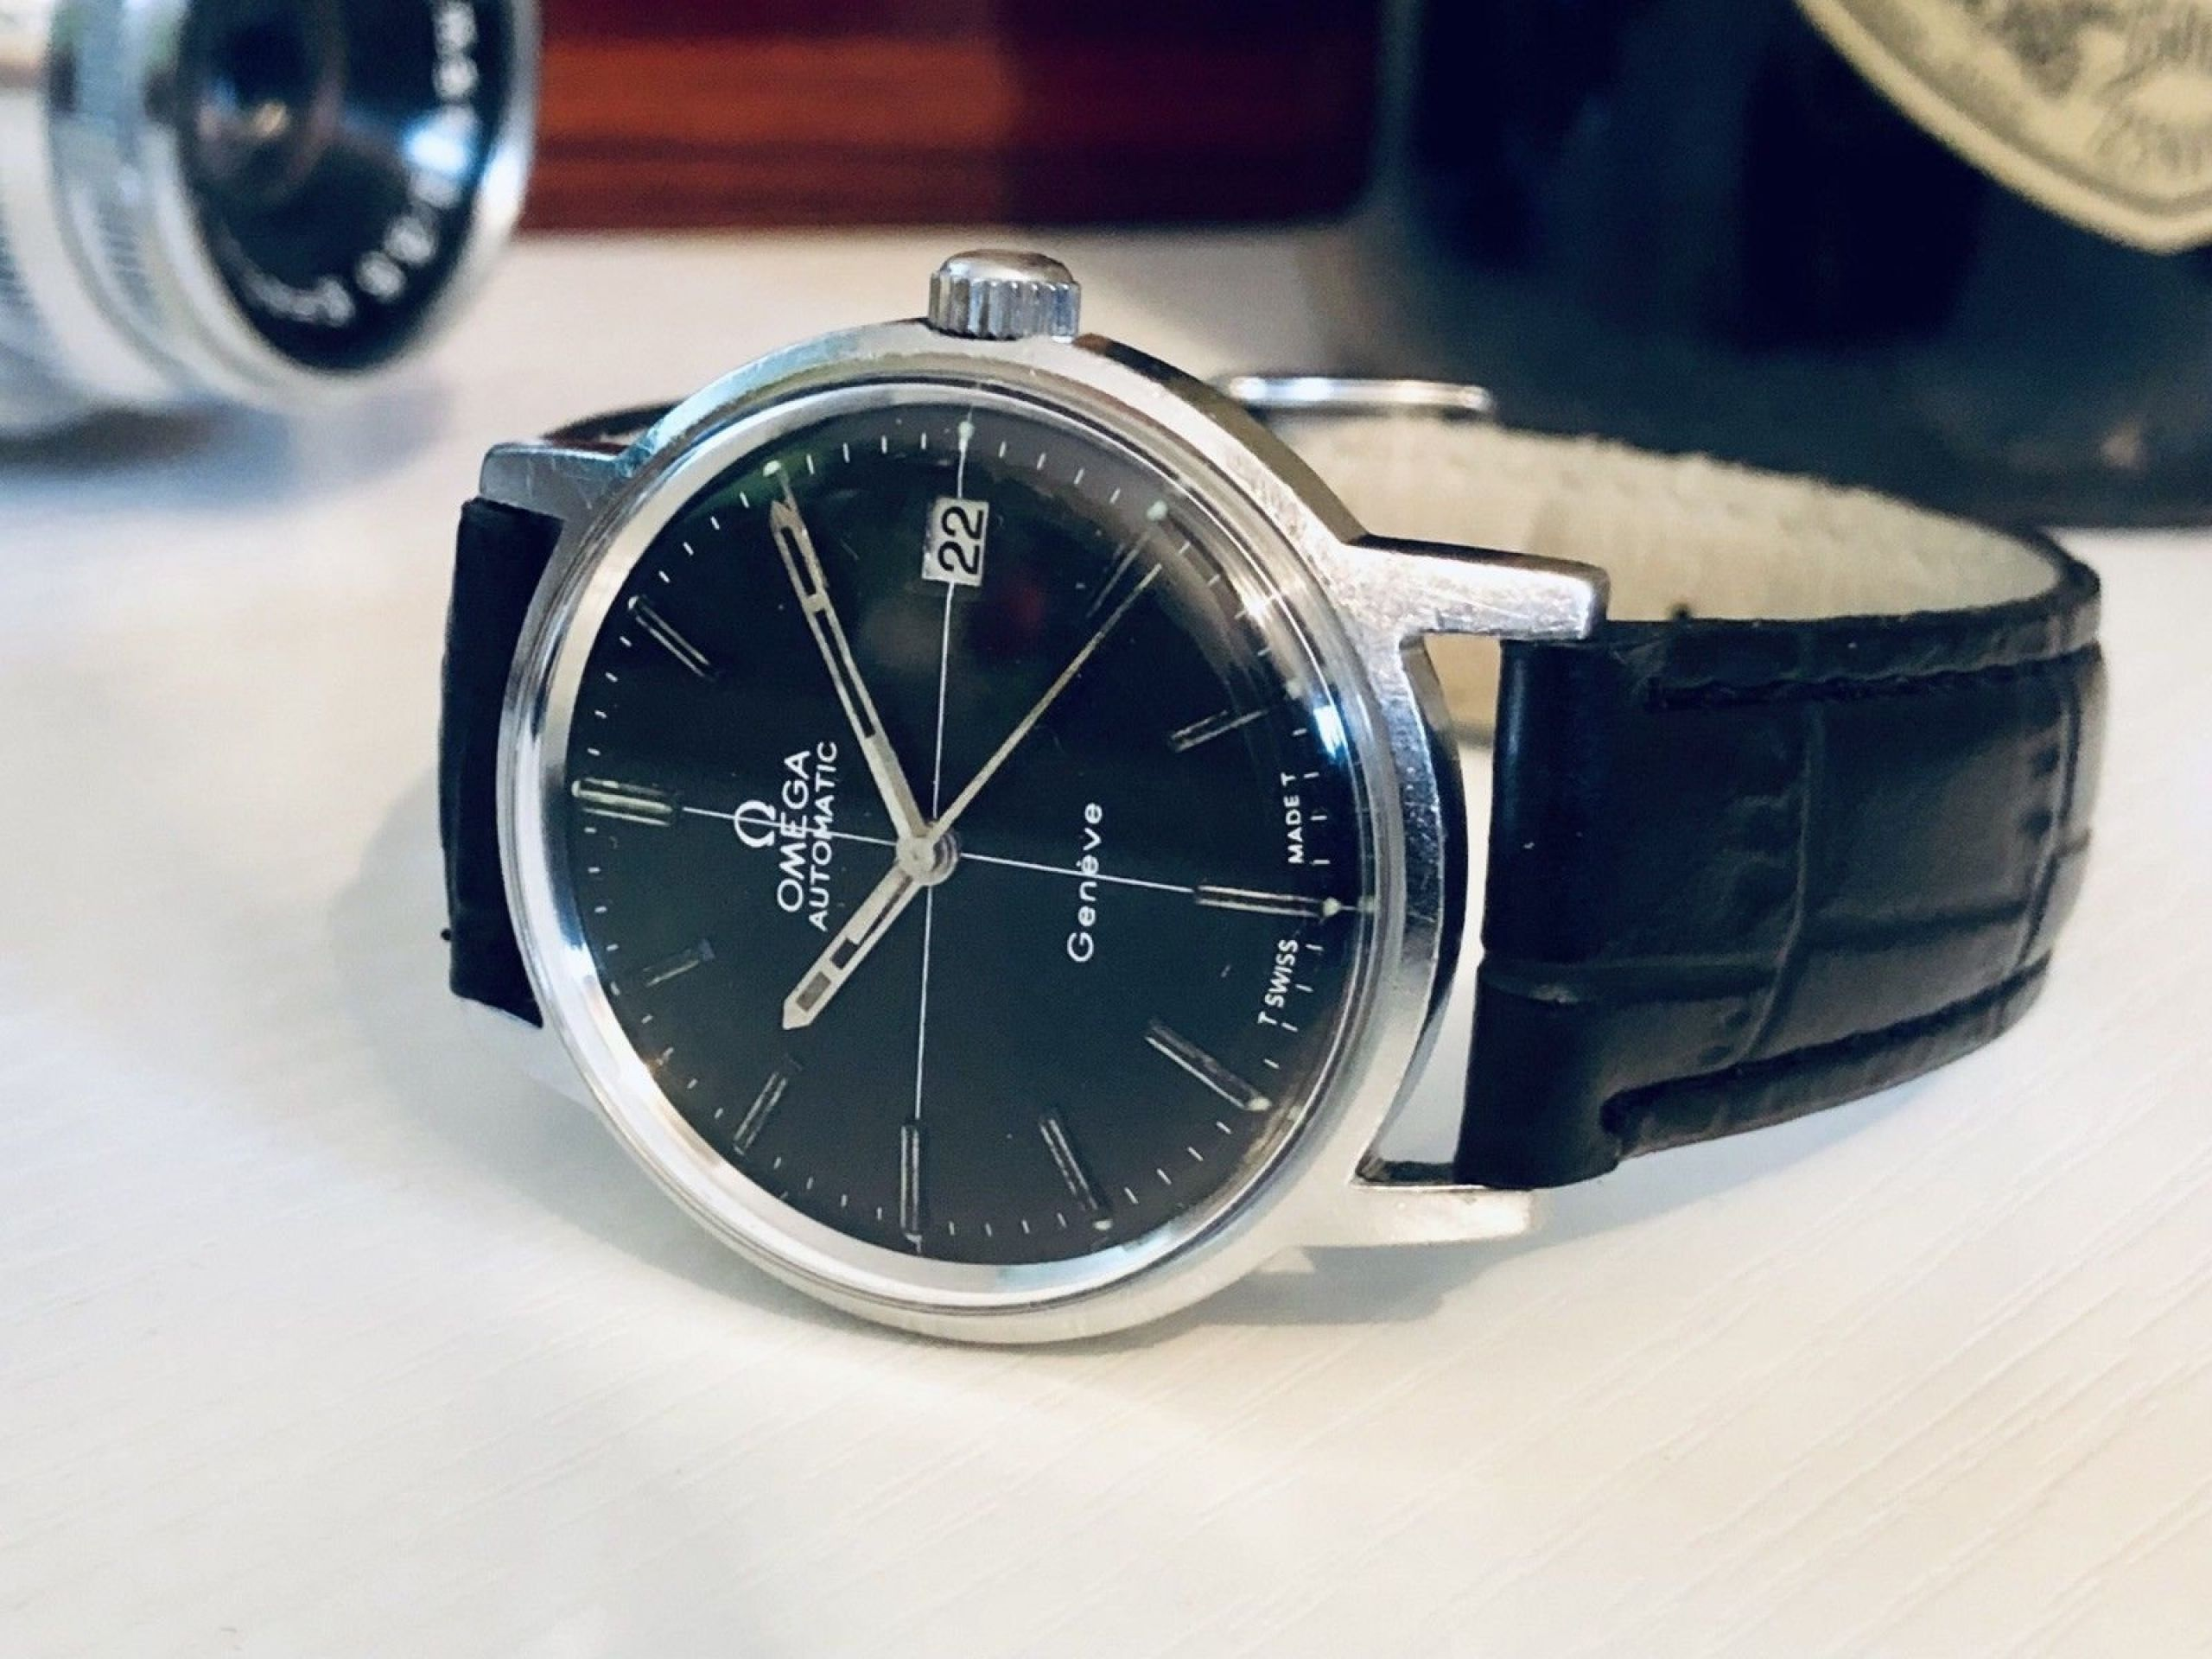 OMEGA SEAMASTER VINTAGE WATCH CAL 285 MECHANICAL STAINLESS STEEL WITH DATE